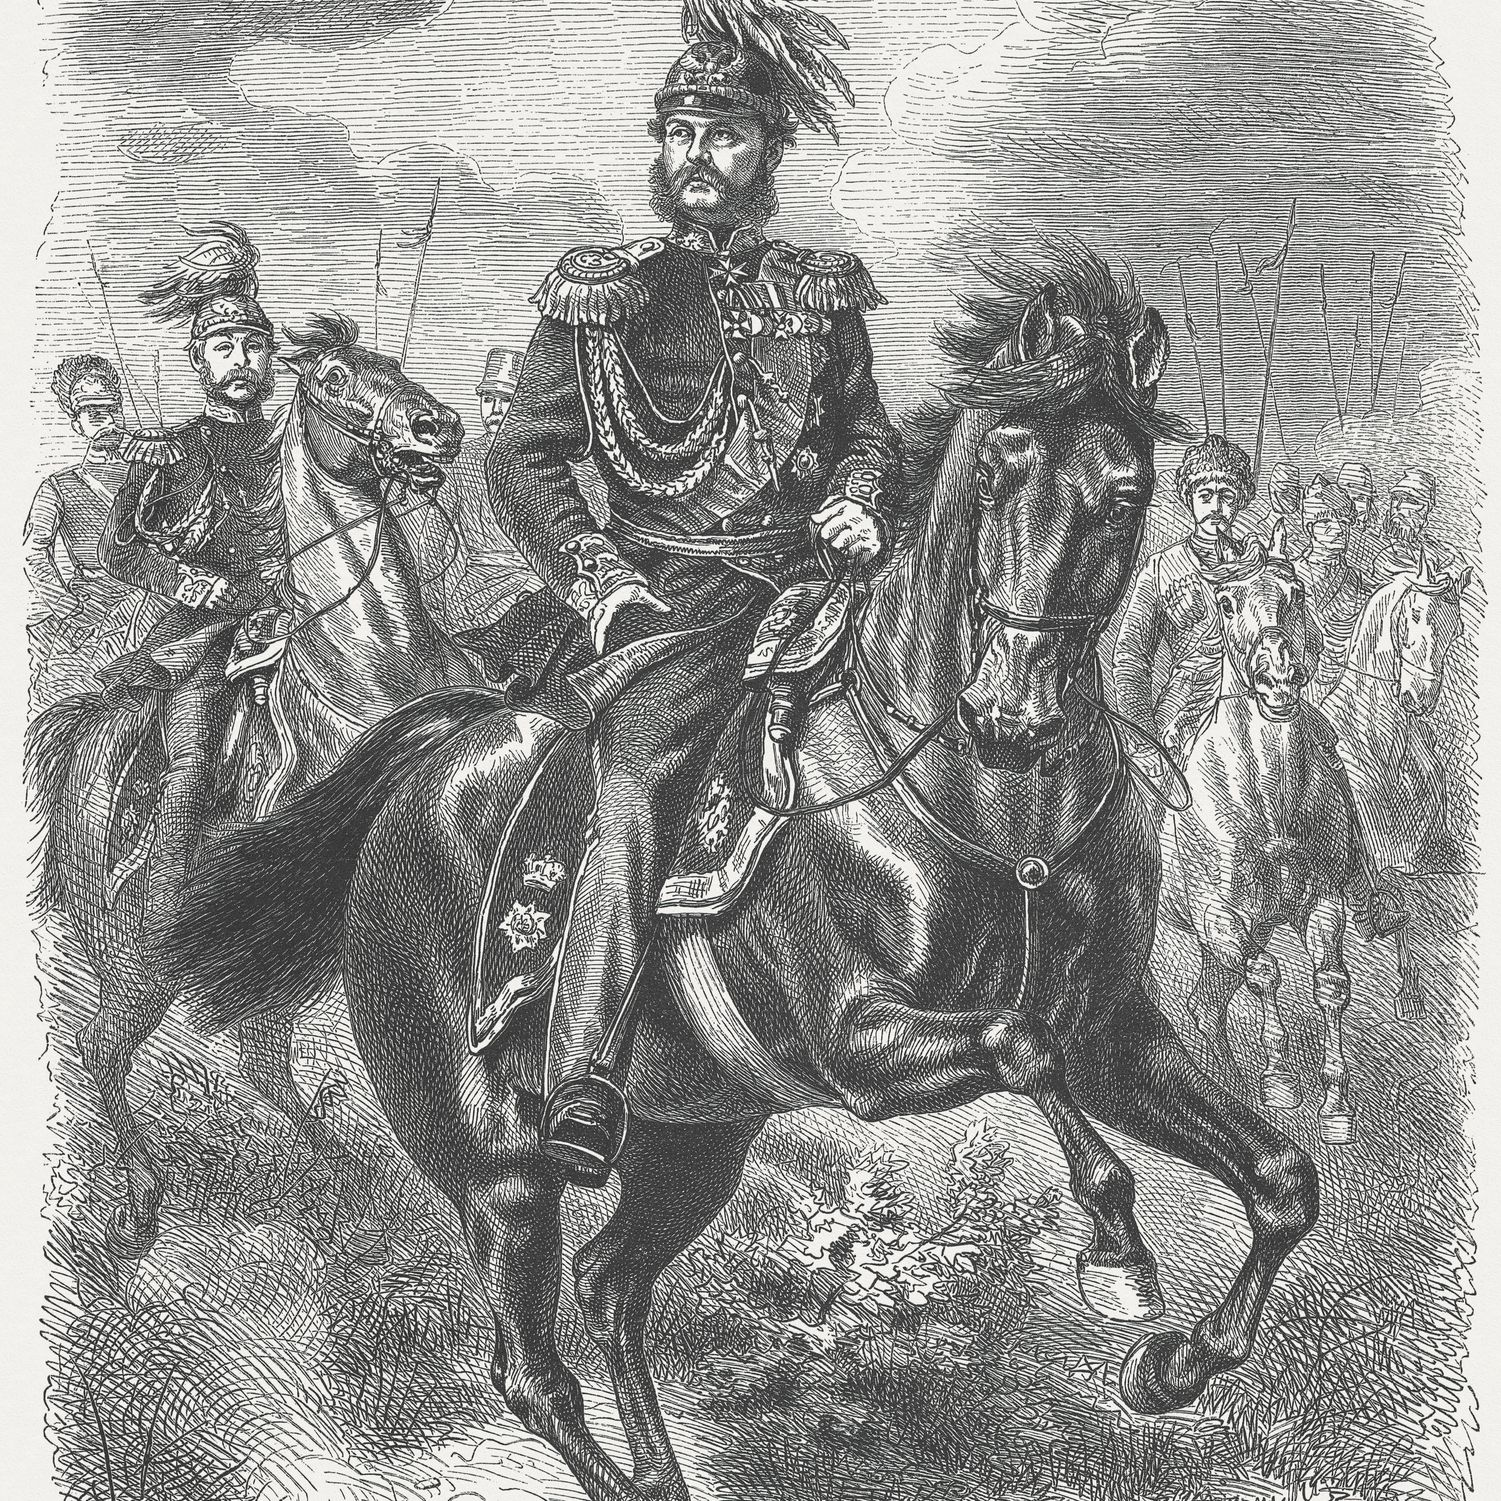 Alexander I of Russia (1777-1825), wood engraving, published in 1877